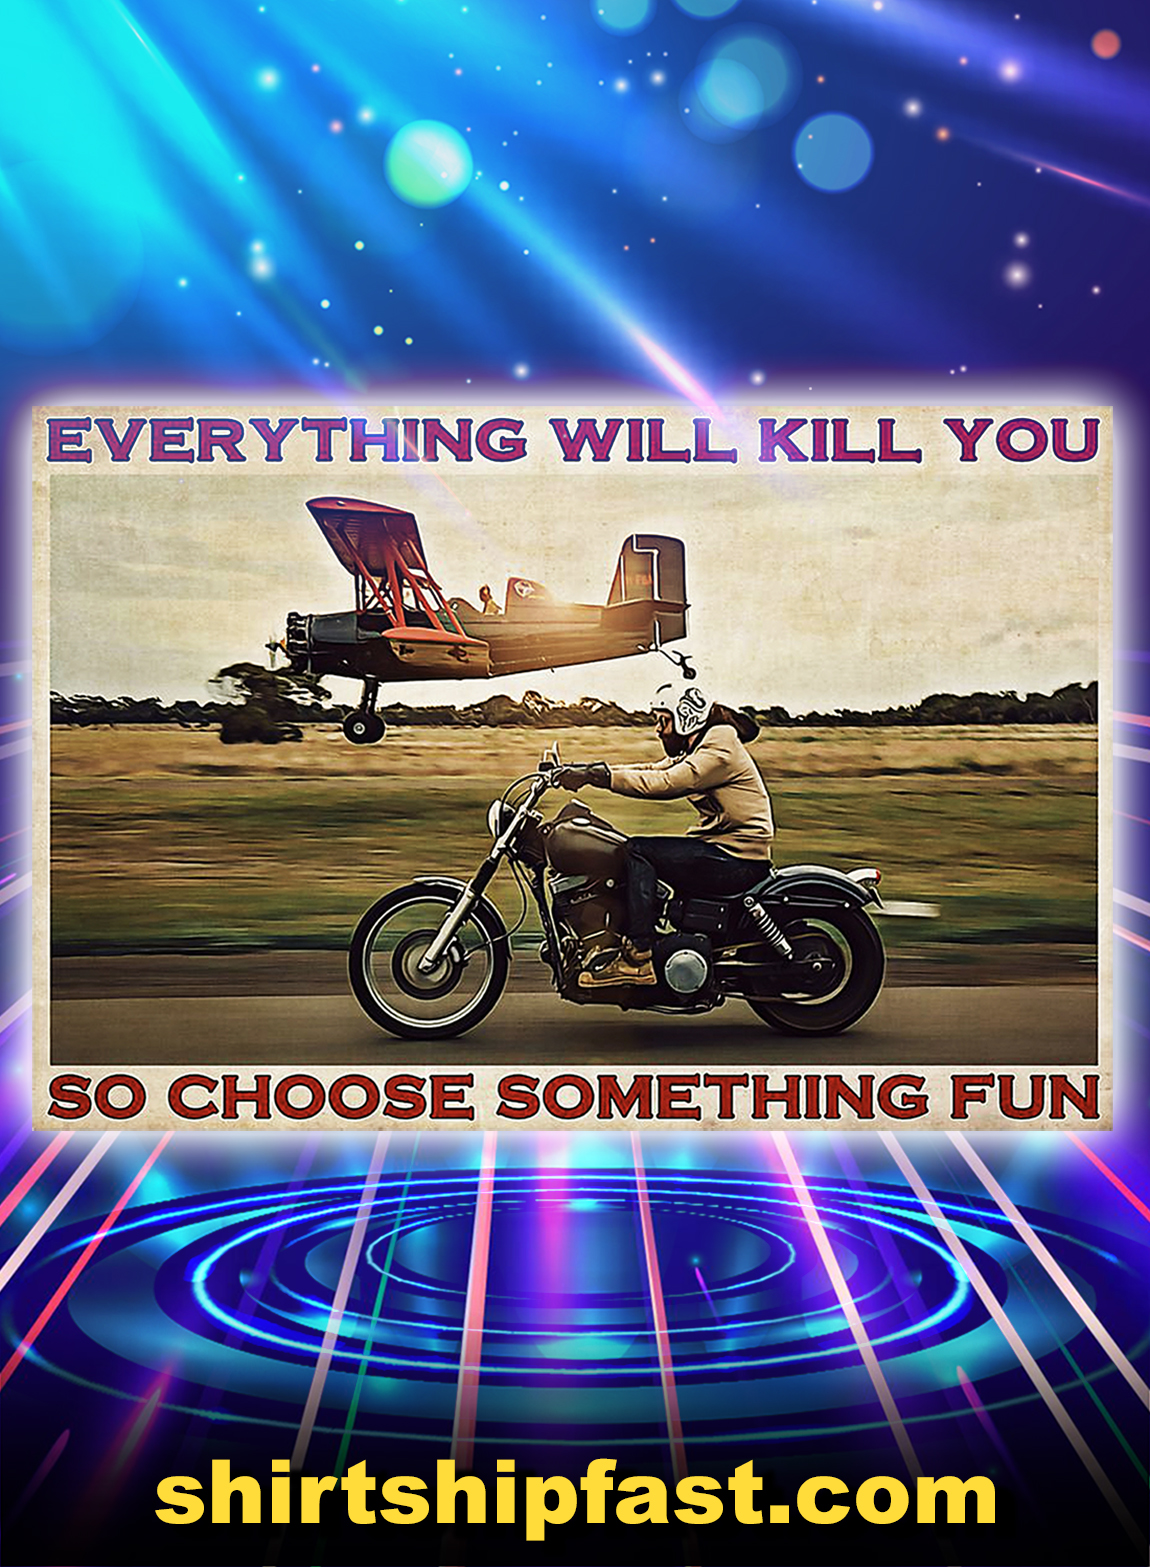 Motorbike airplane everything will kill you so choose something fun poster - A3